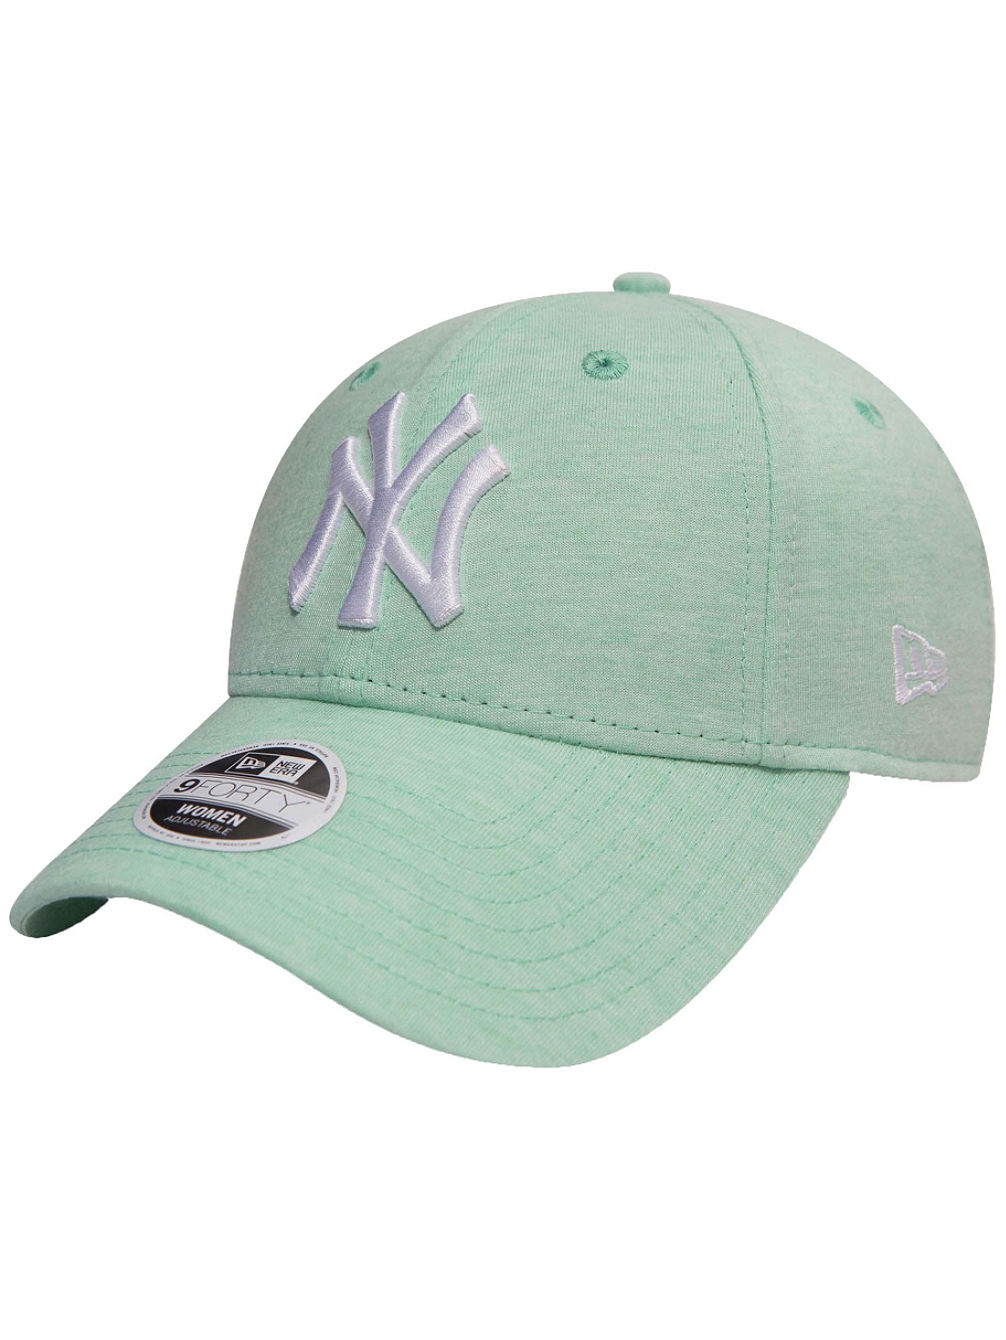 c9c173bee28 Buy New Era Jersey 9Forty Cap online at blue-tomato.com